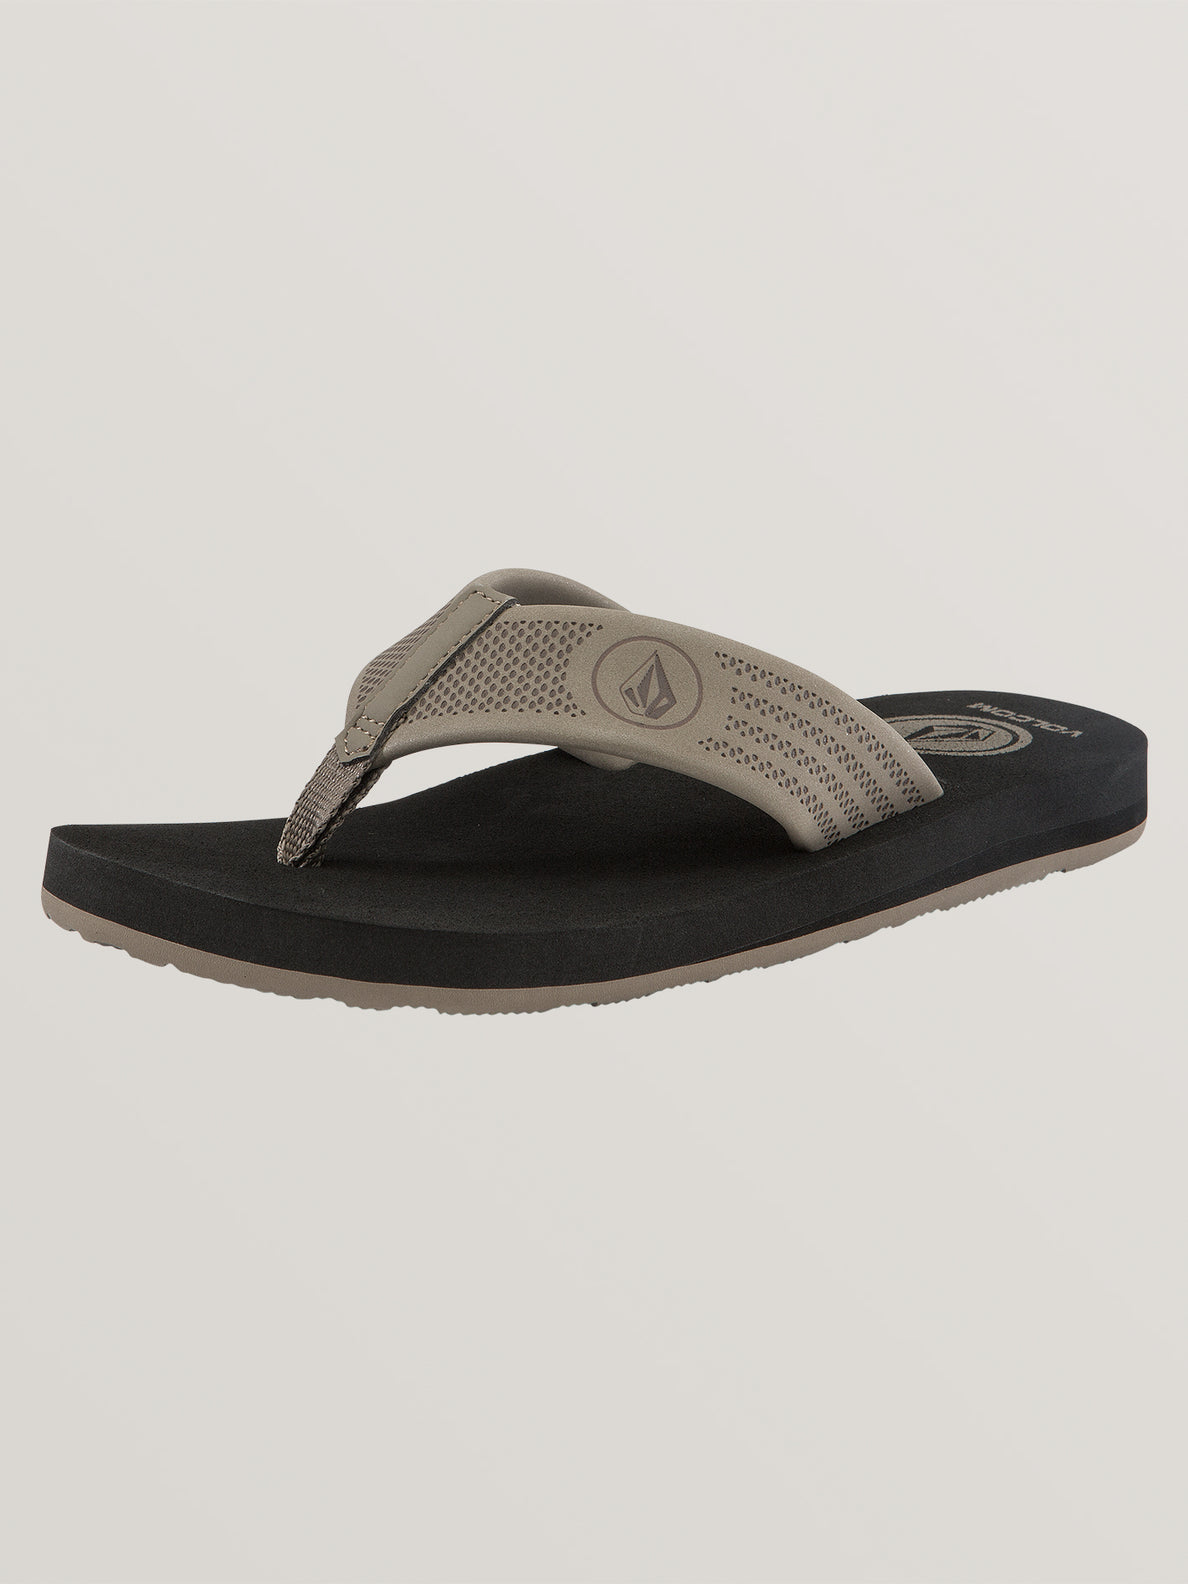 Big Boys Daycation Sandals In Khaki, Back View